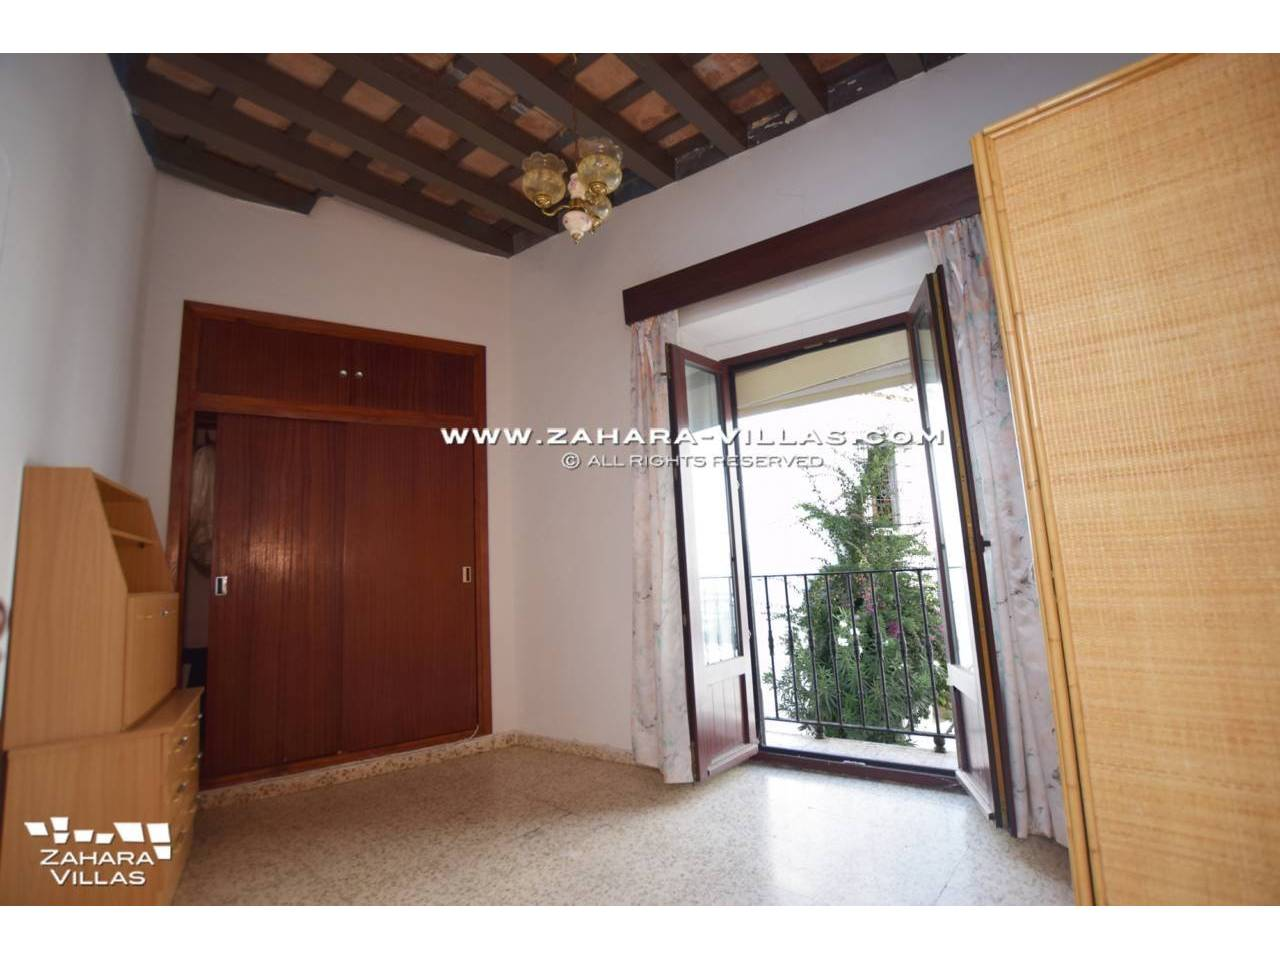 Imagen 9 de House for sale located in pedestrian street of Vejer de la Frontera